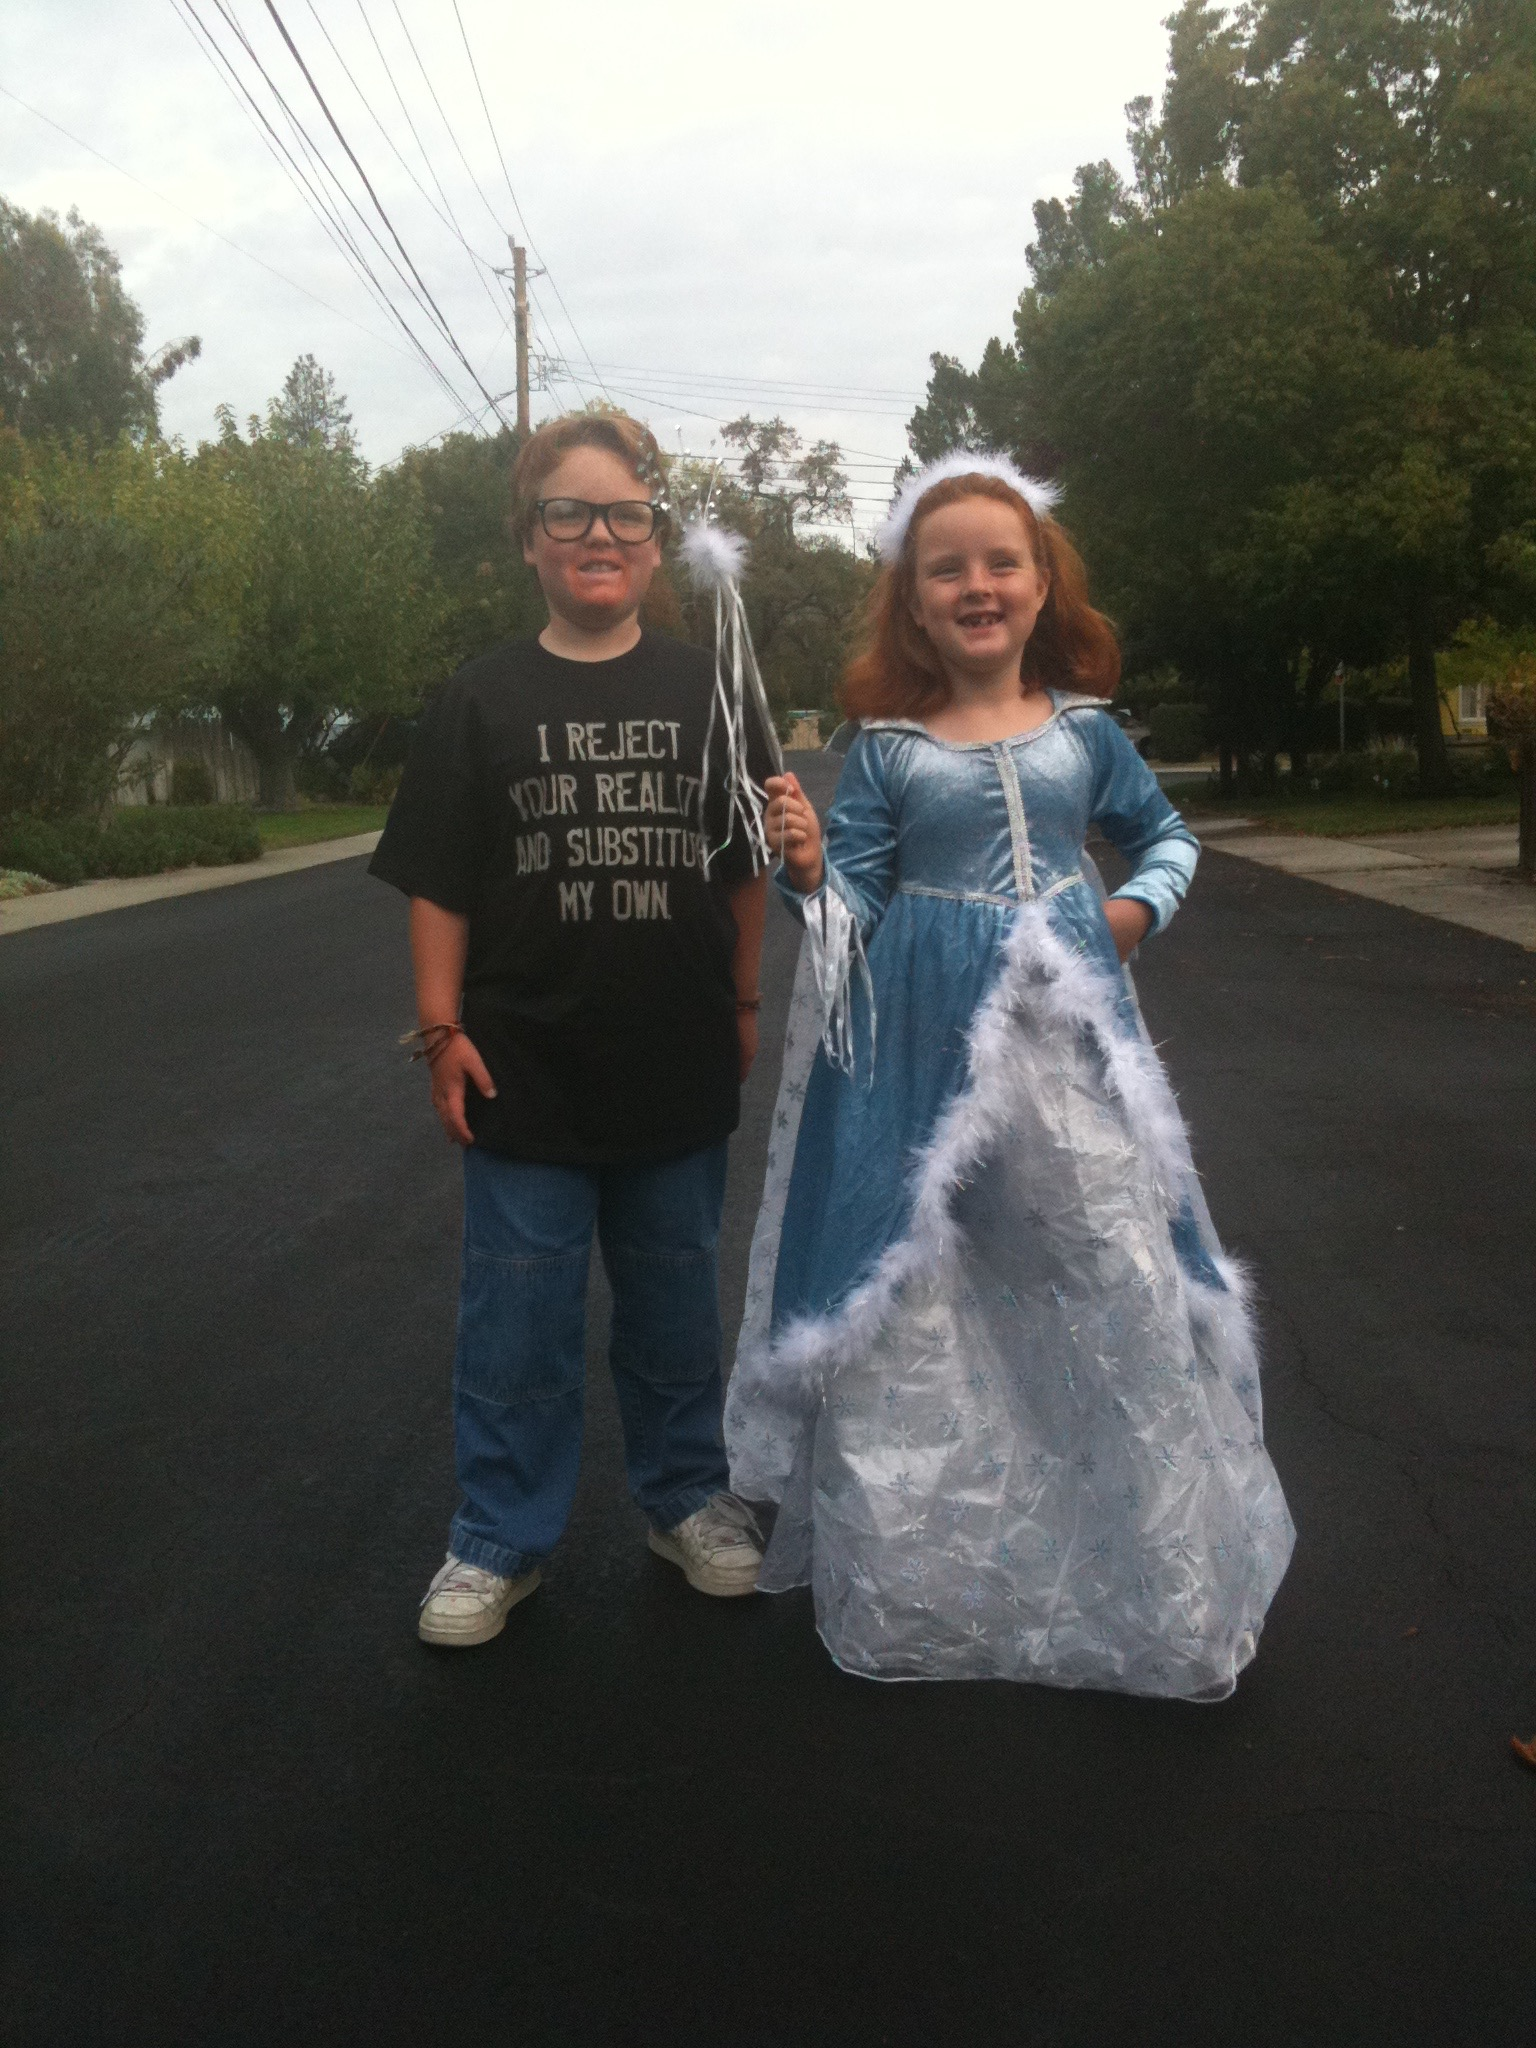 Adam Savage (Mythbusters) and Snow Queen